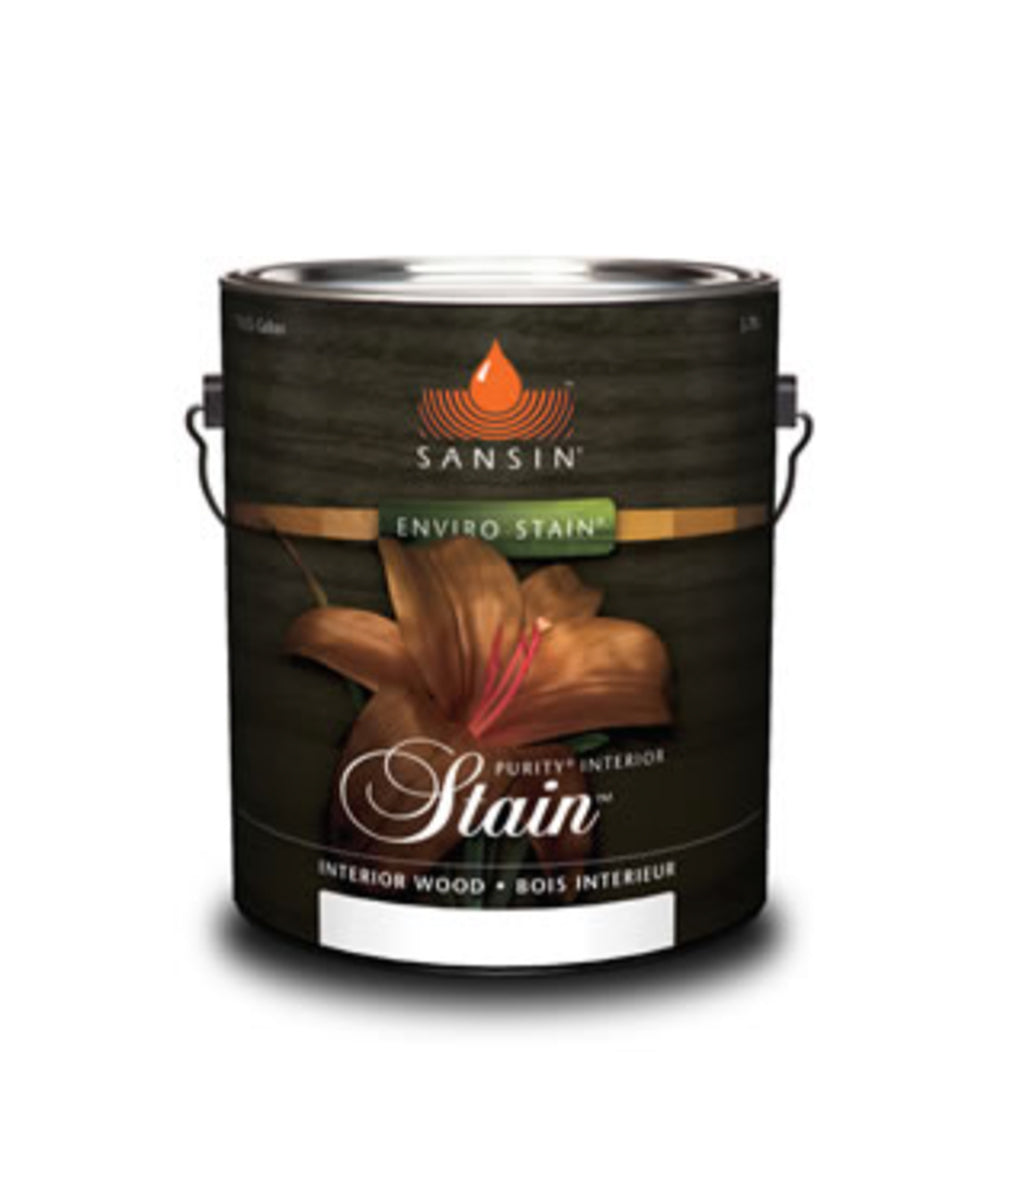 Sansin Interior Stain, available at Clement's Paint in Austin, TX.